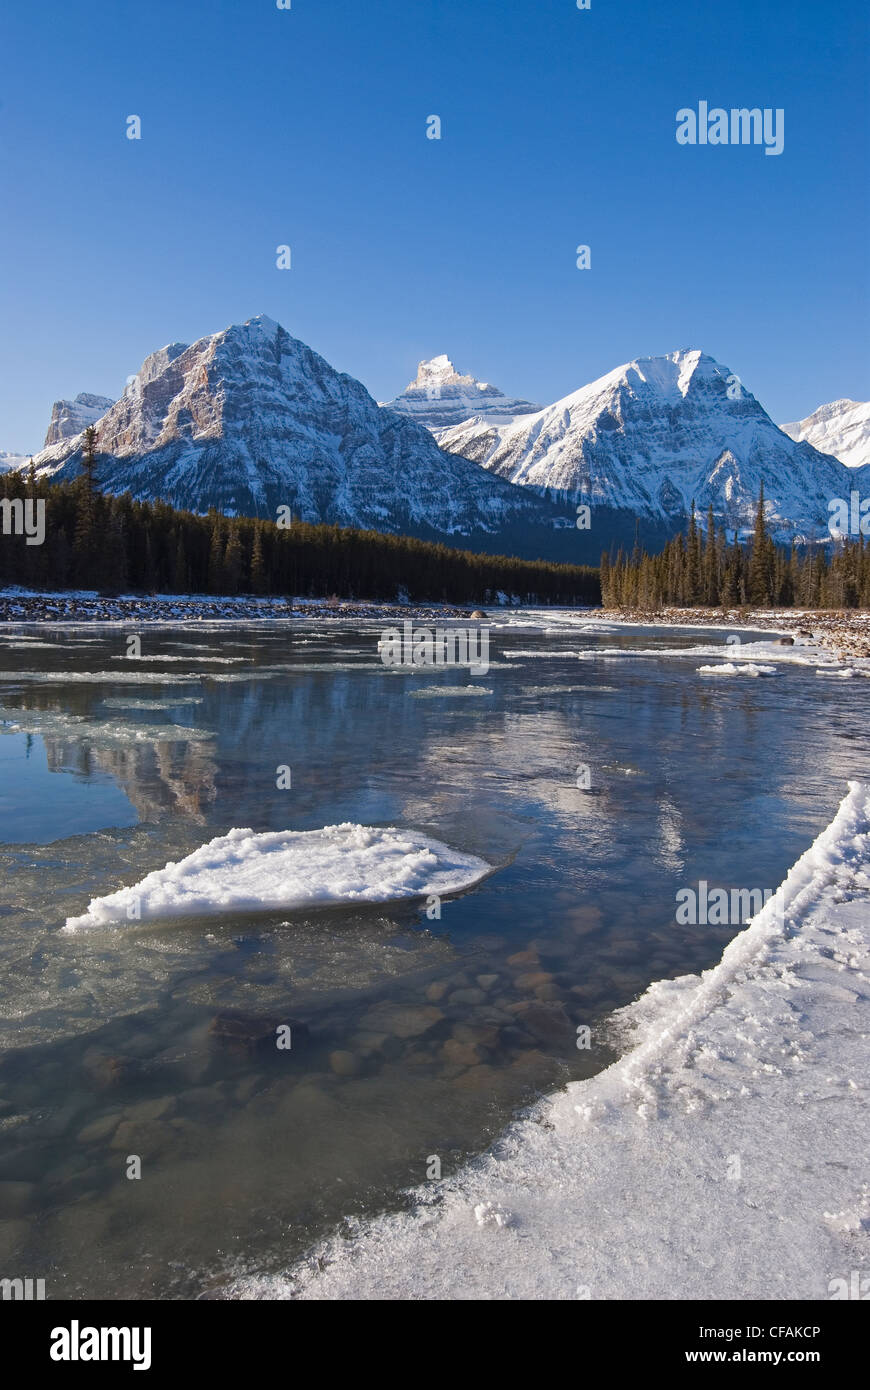 The Rocky Mountains, form a picturesque backdrop to the Athabasca river in early winter just South of Jasper, Alberta, - Stock Image